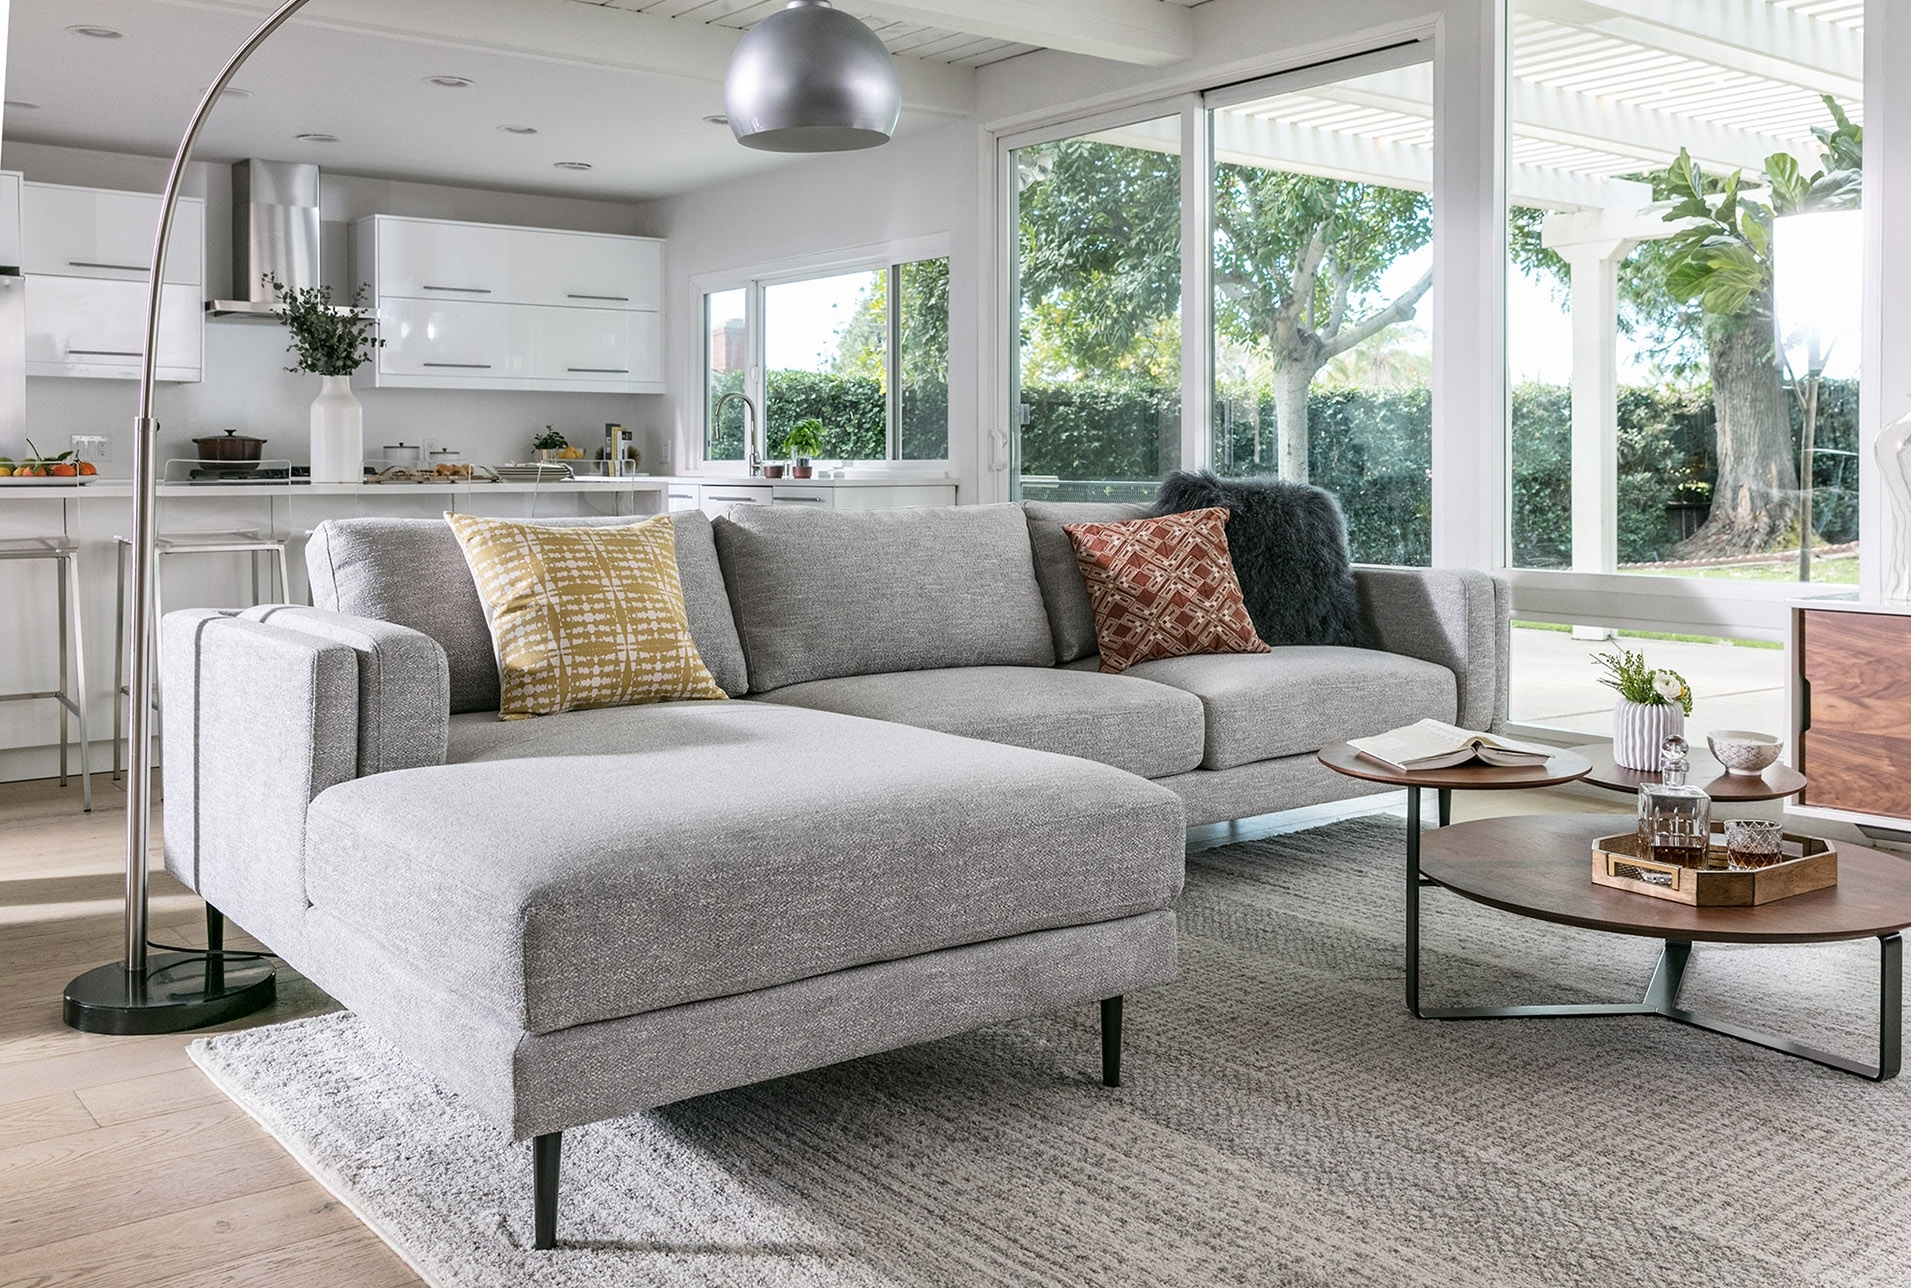 Aquarius Light Grey 2 Piece Sectional W/laf Chaise | Products Intended For Aquarius Light Grey 2 Piece Sectionals With Laf Chaise (View 10 of 30)